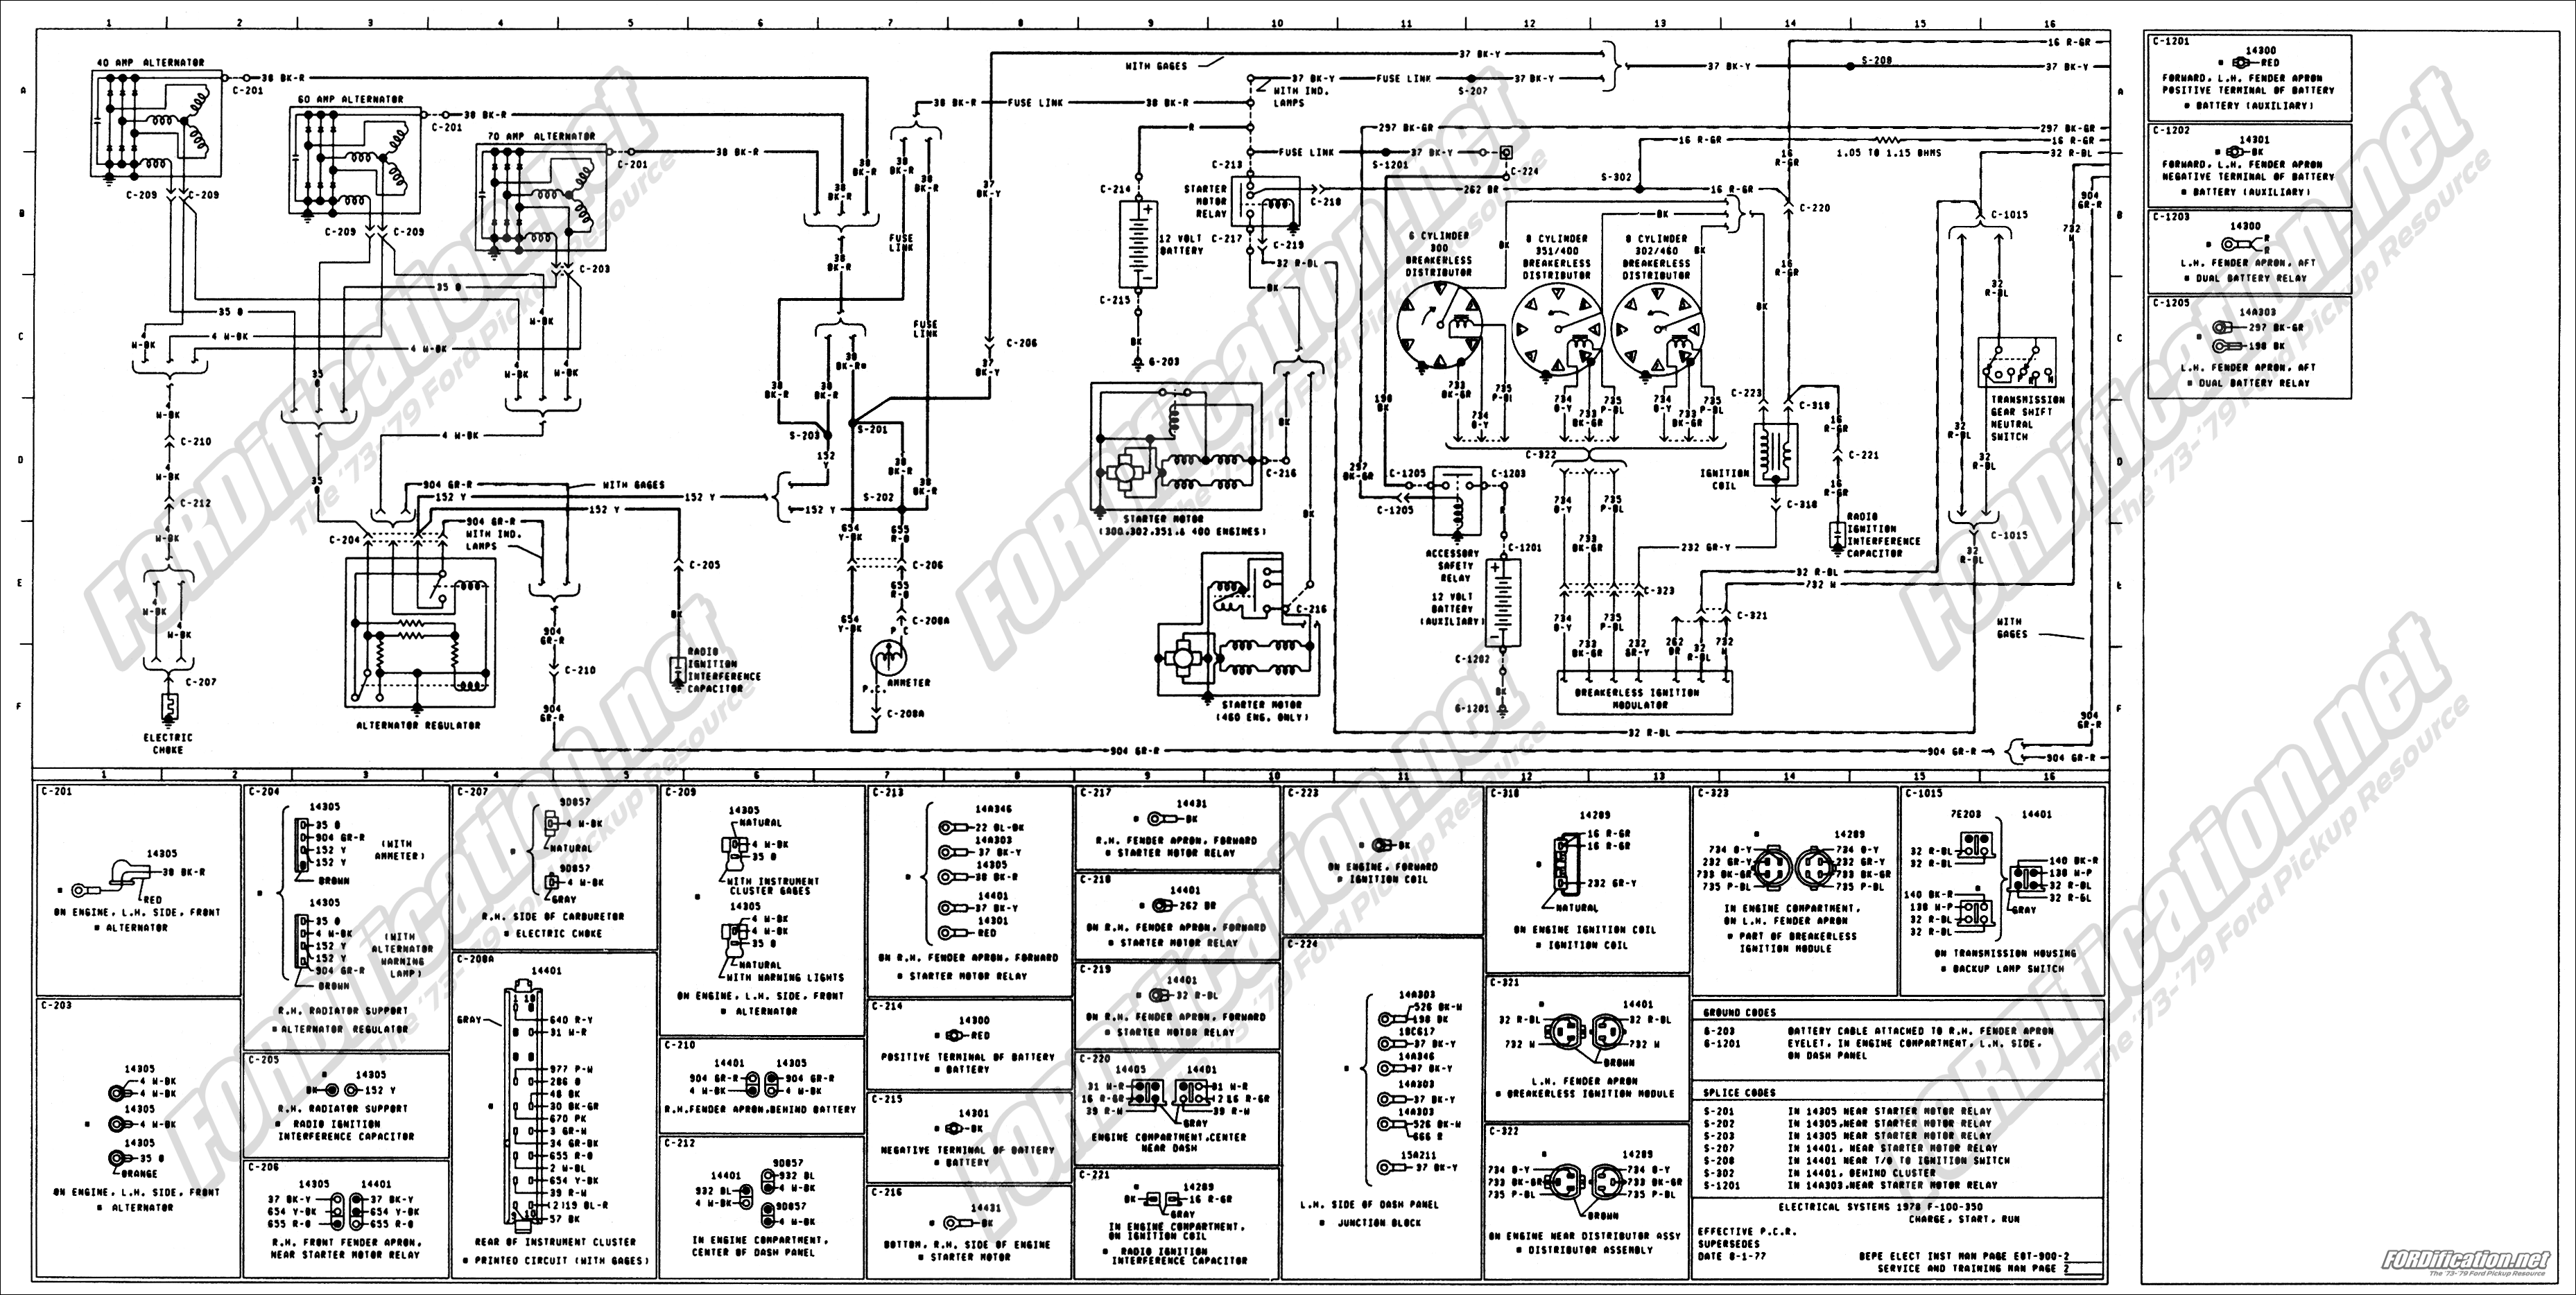 [DIAGRAM] Wiring Diagram For A 73 78 Ford F100 FULL